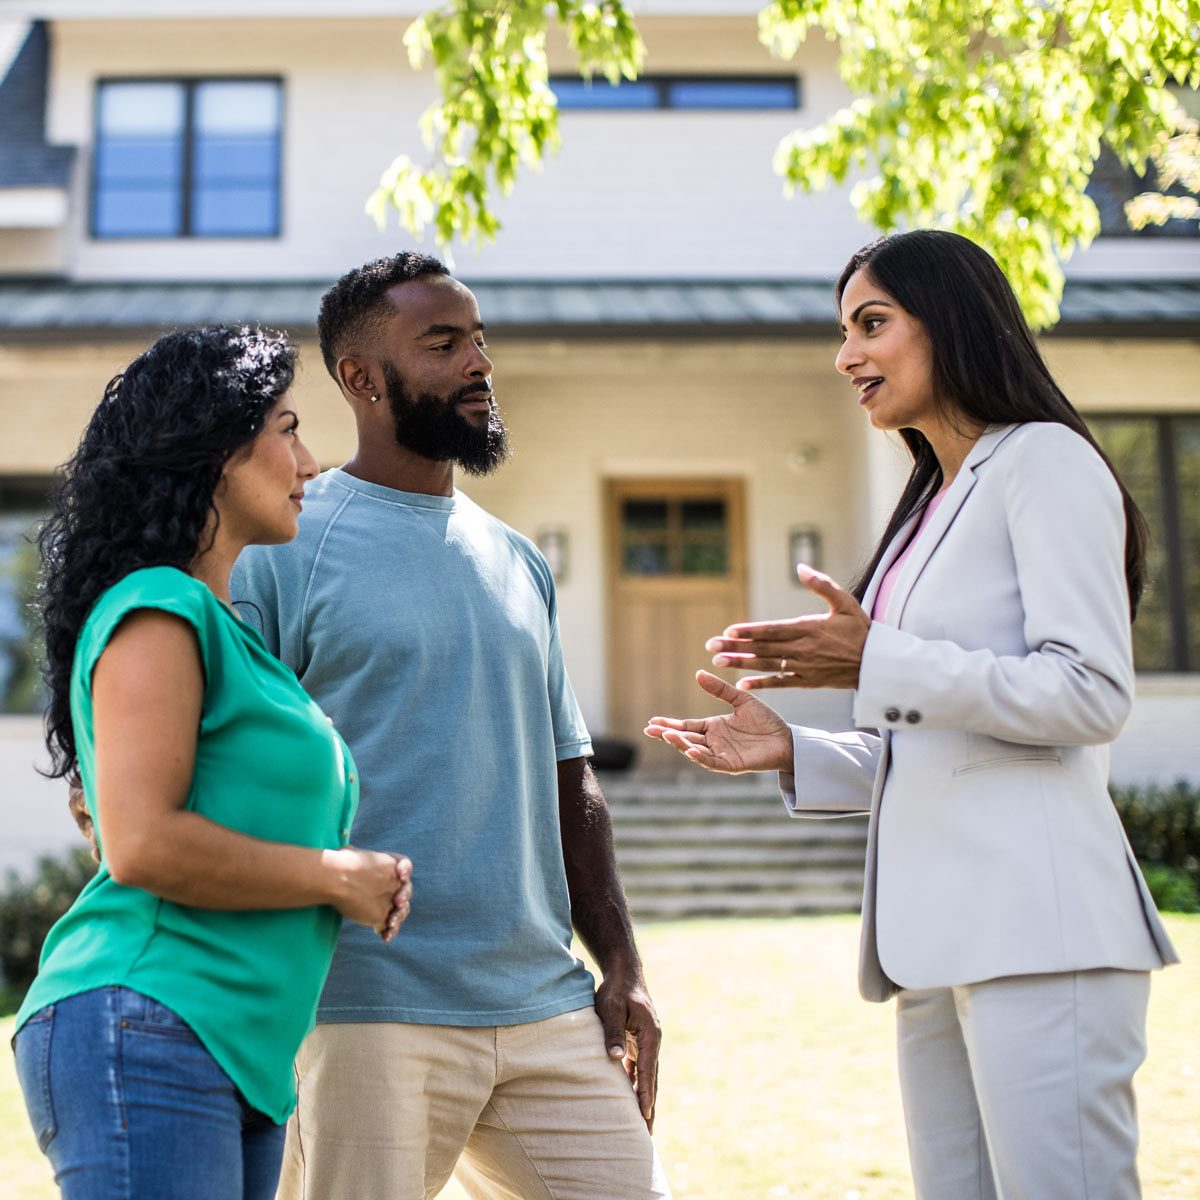 Couple meeting with real estate agent in front of home